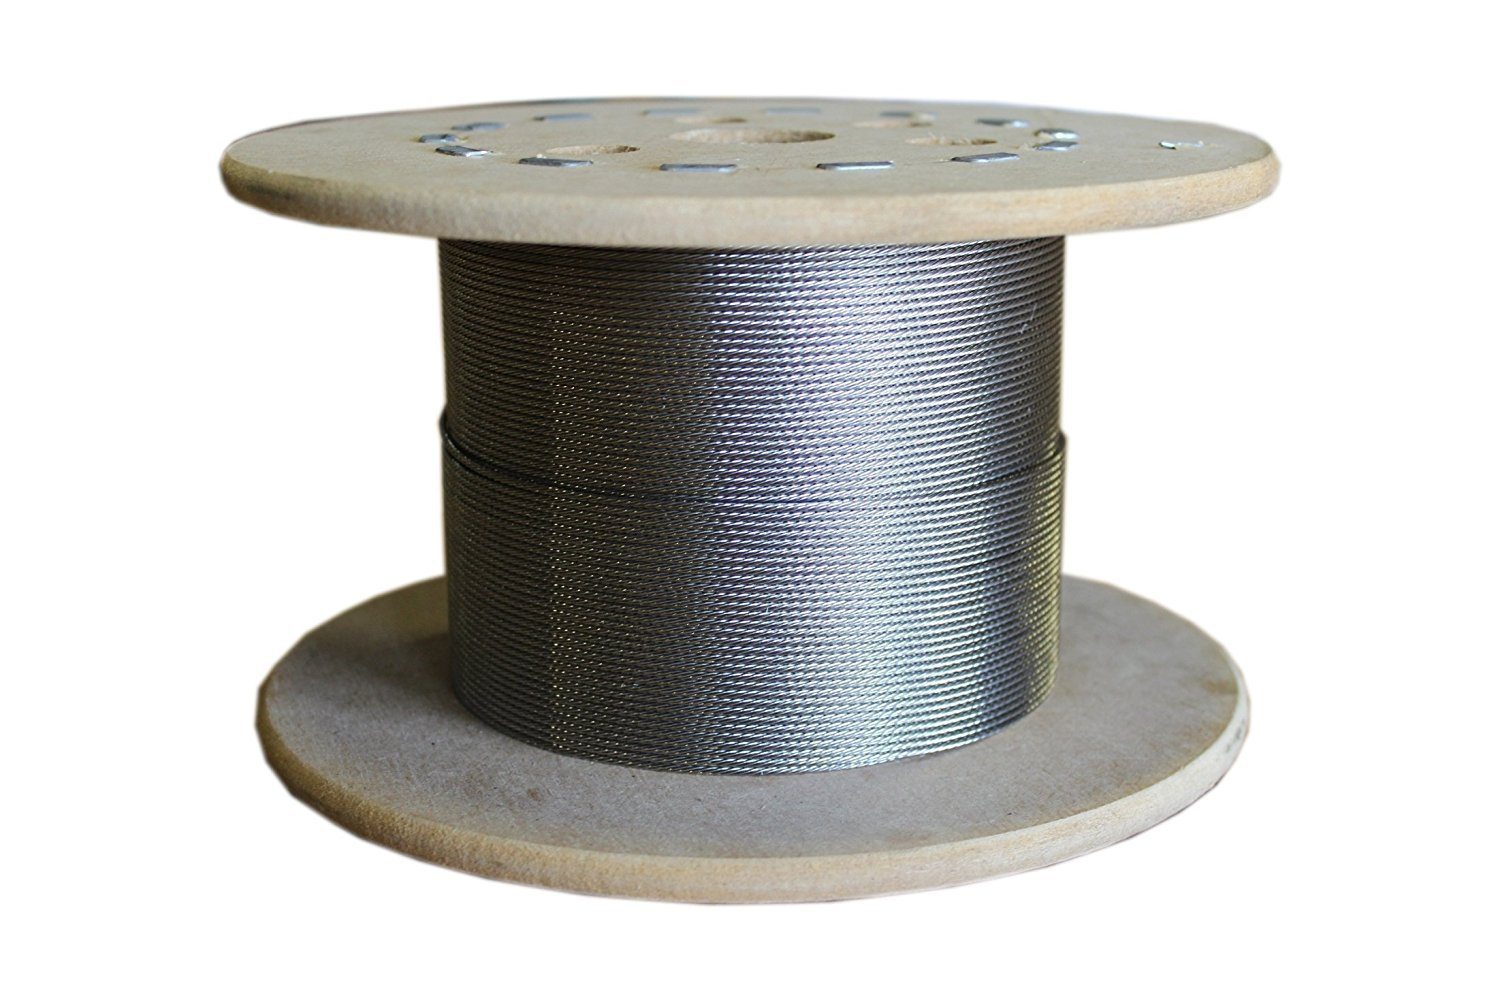 wire rope 1/4'' X 250', 7x19,Galvanized Cable Reel 7 by 19 Construction, Trade Size 1/4 by 250 Feet